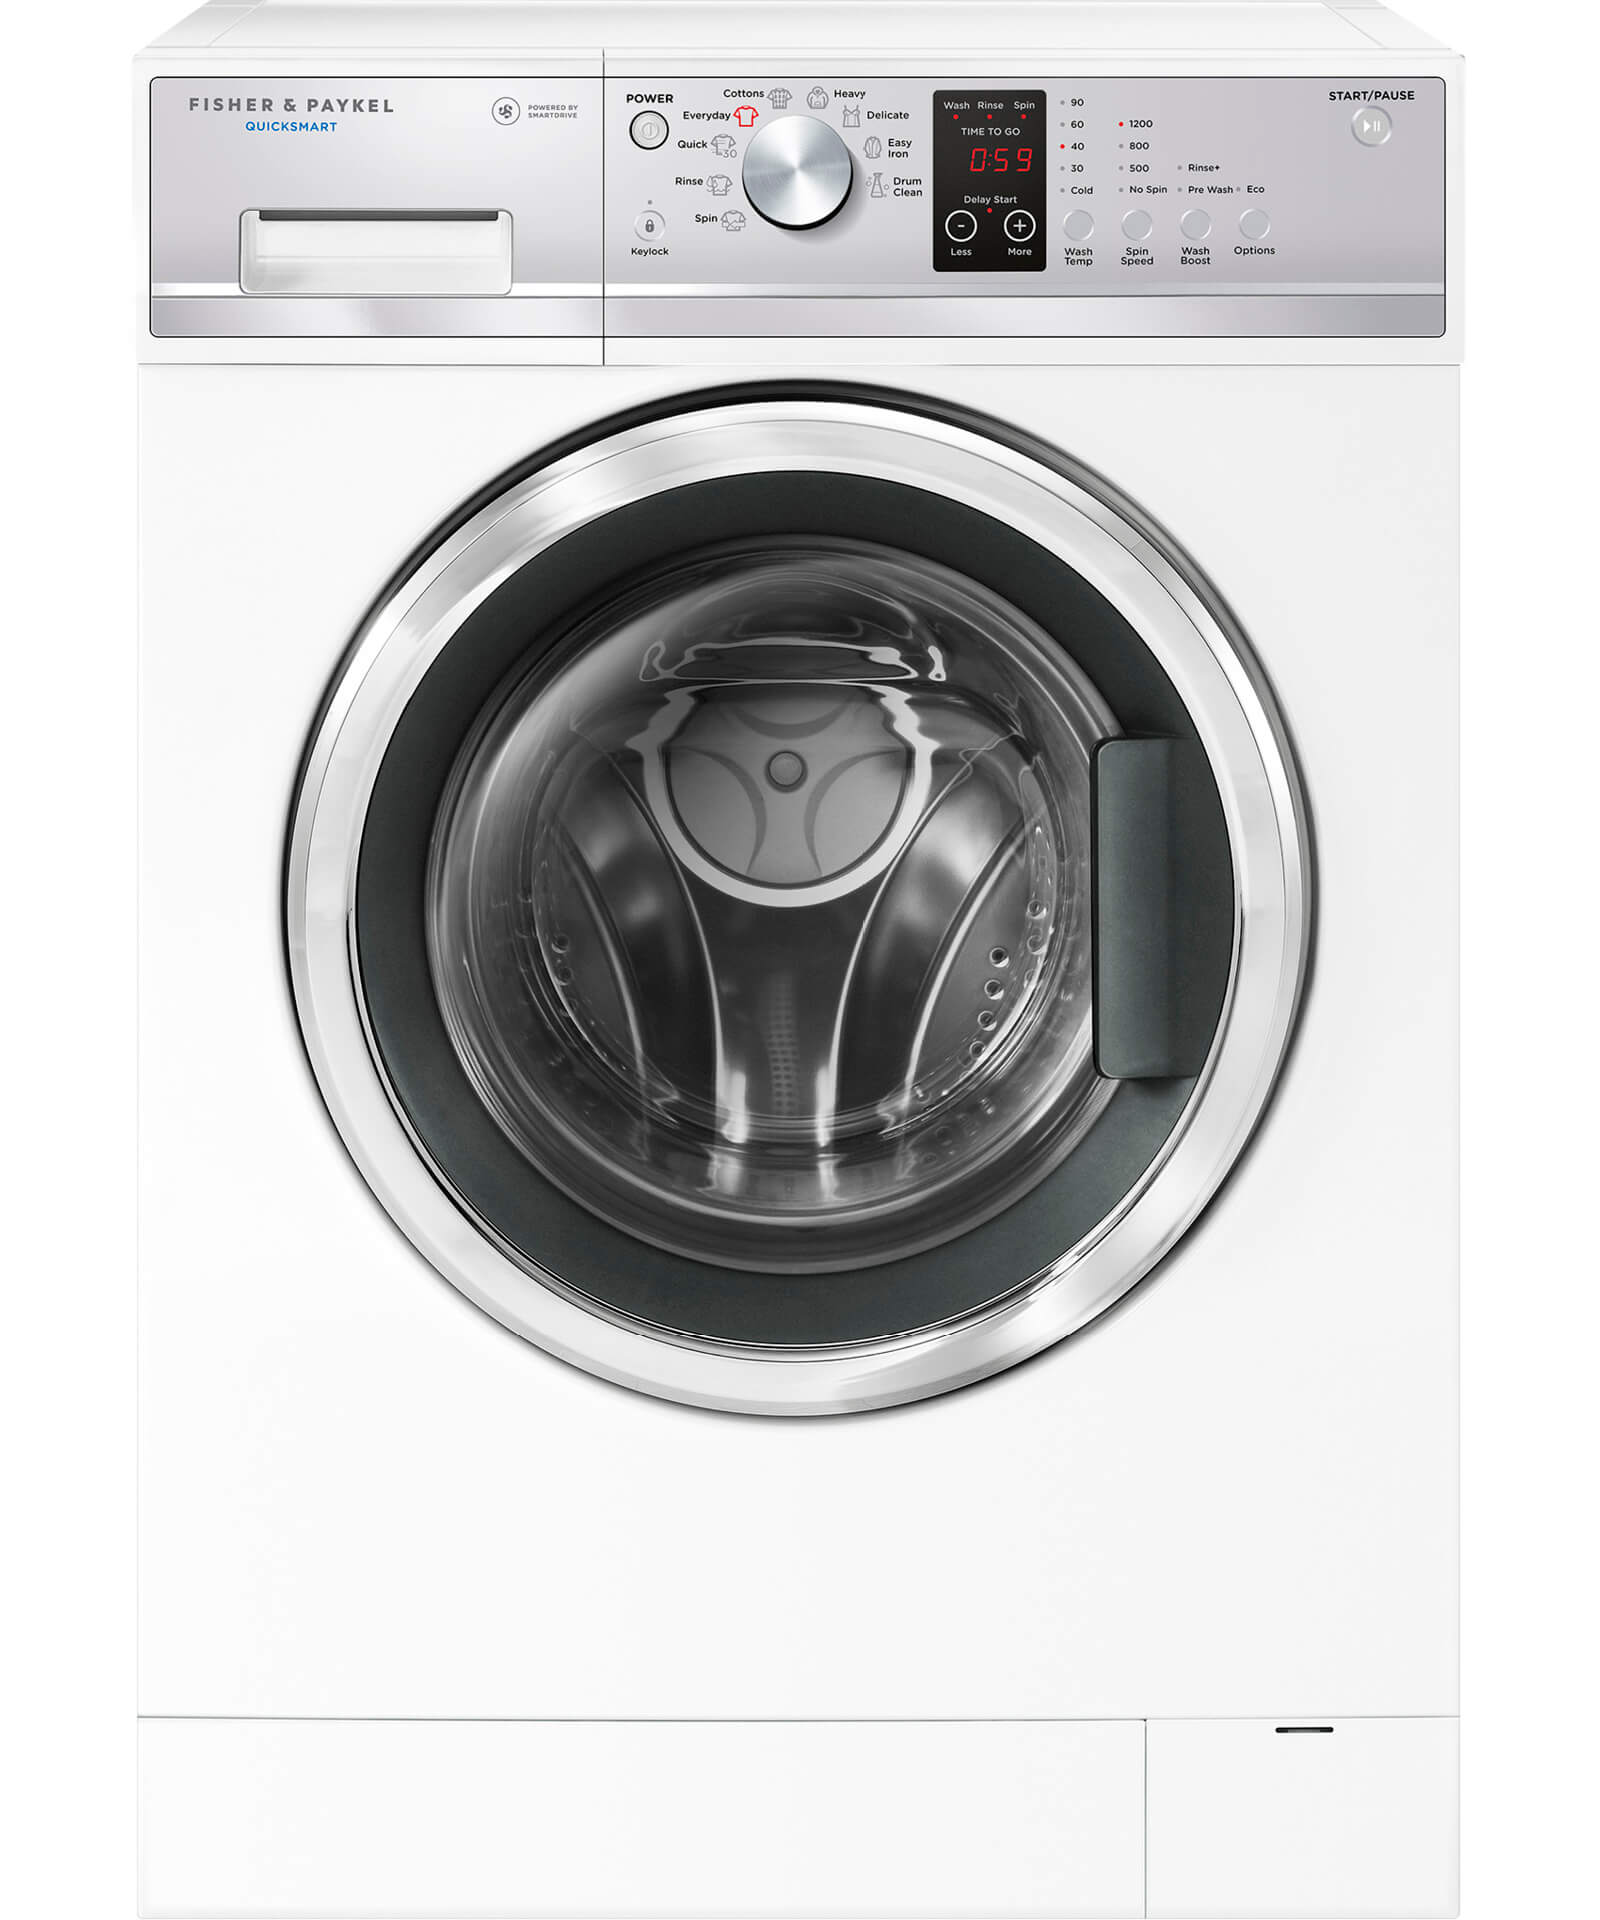 fisher and paykel washing machine service manual